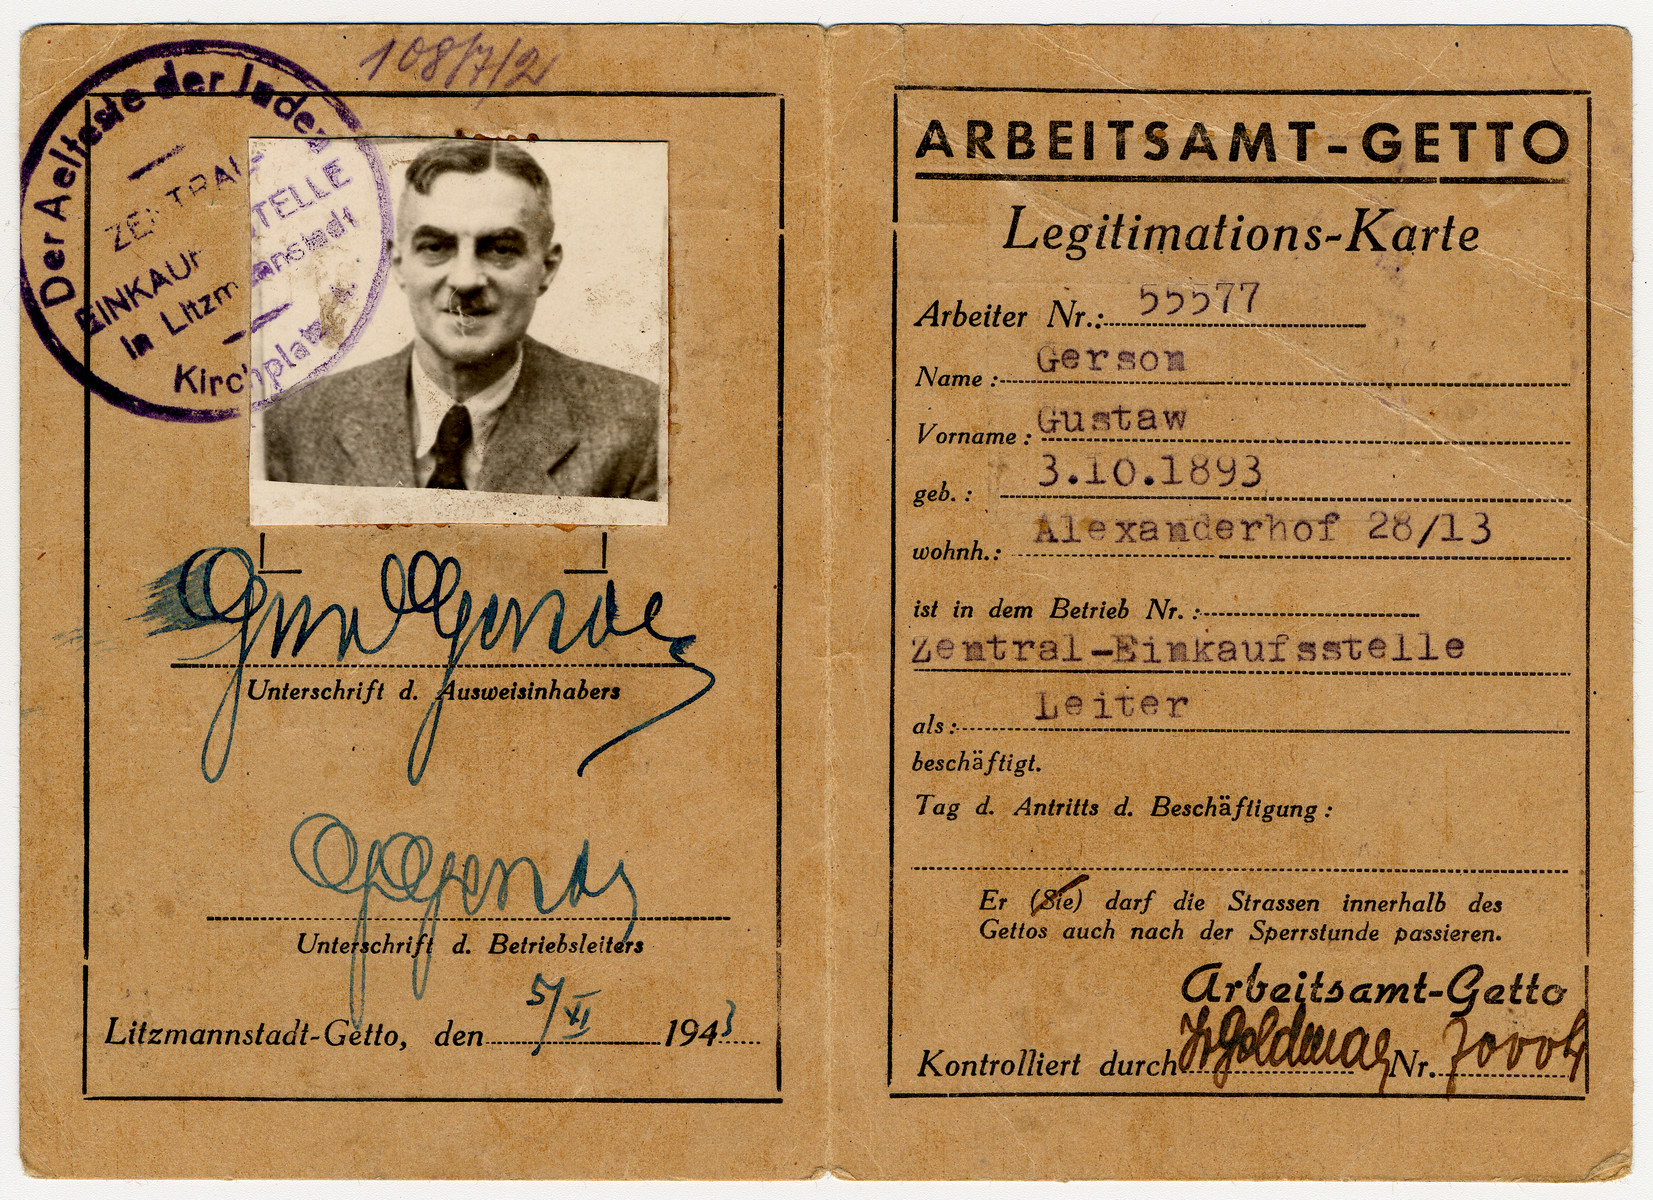 Work card issued to Gustaw Gerson, the director of the Zentral Einkaufstelle of the Lodz ghetto.